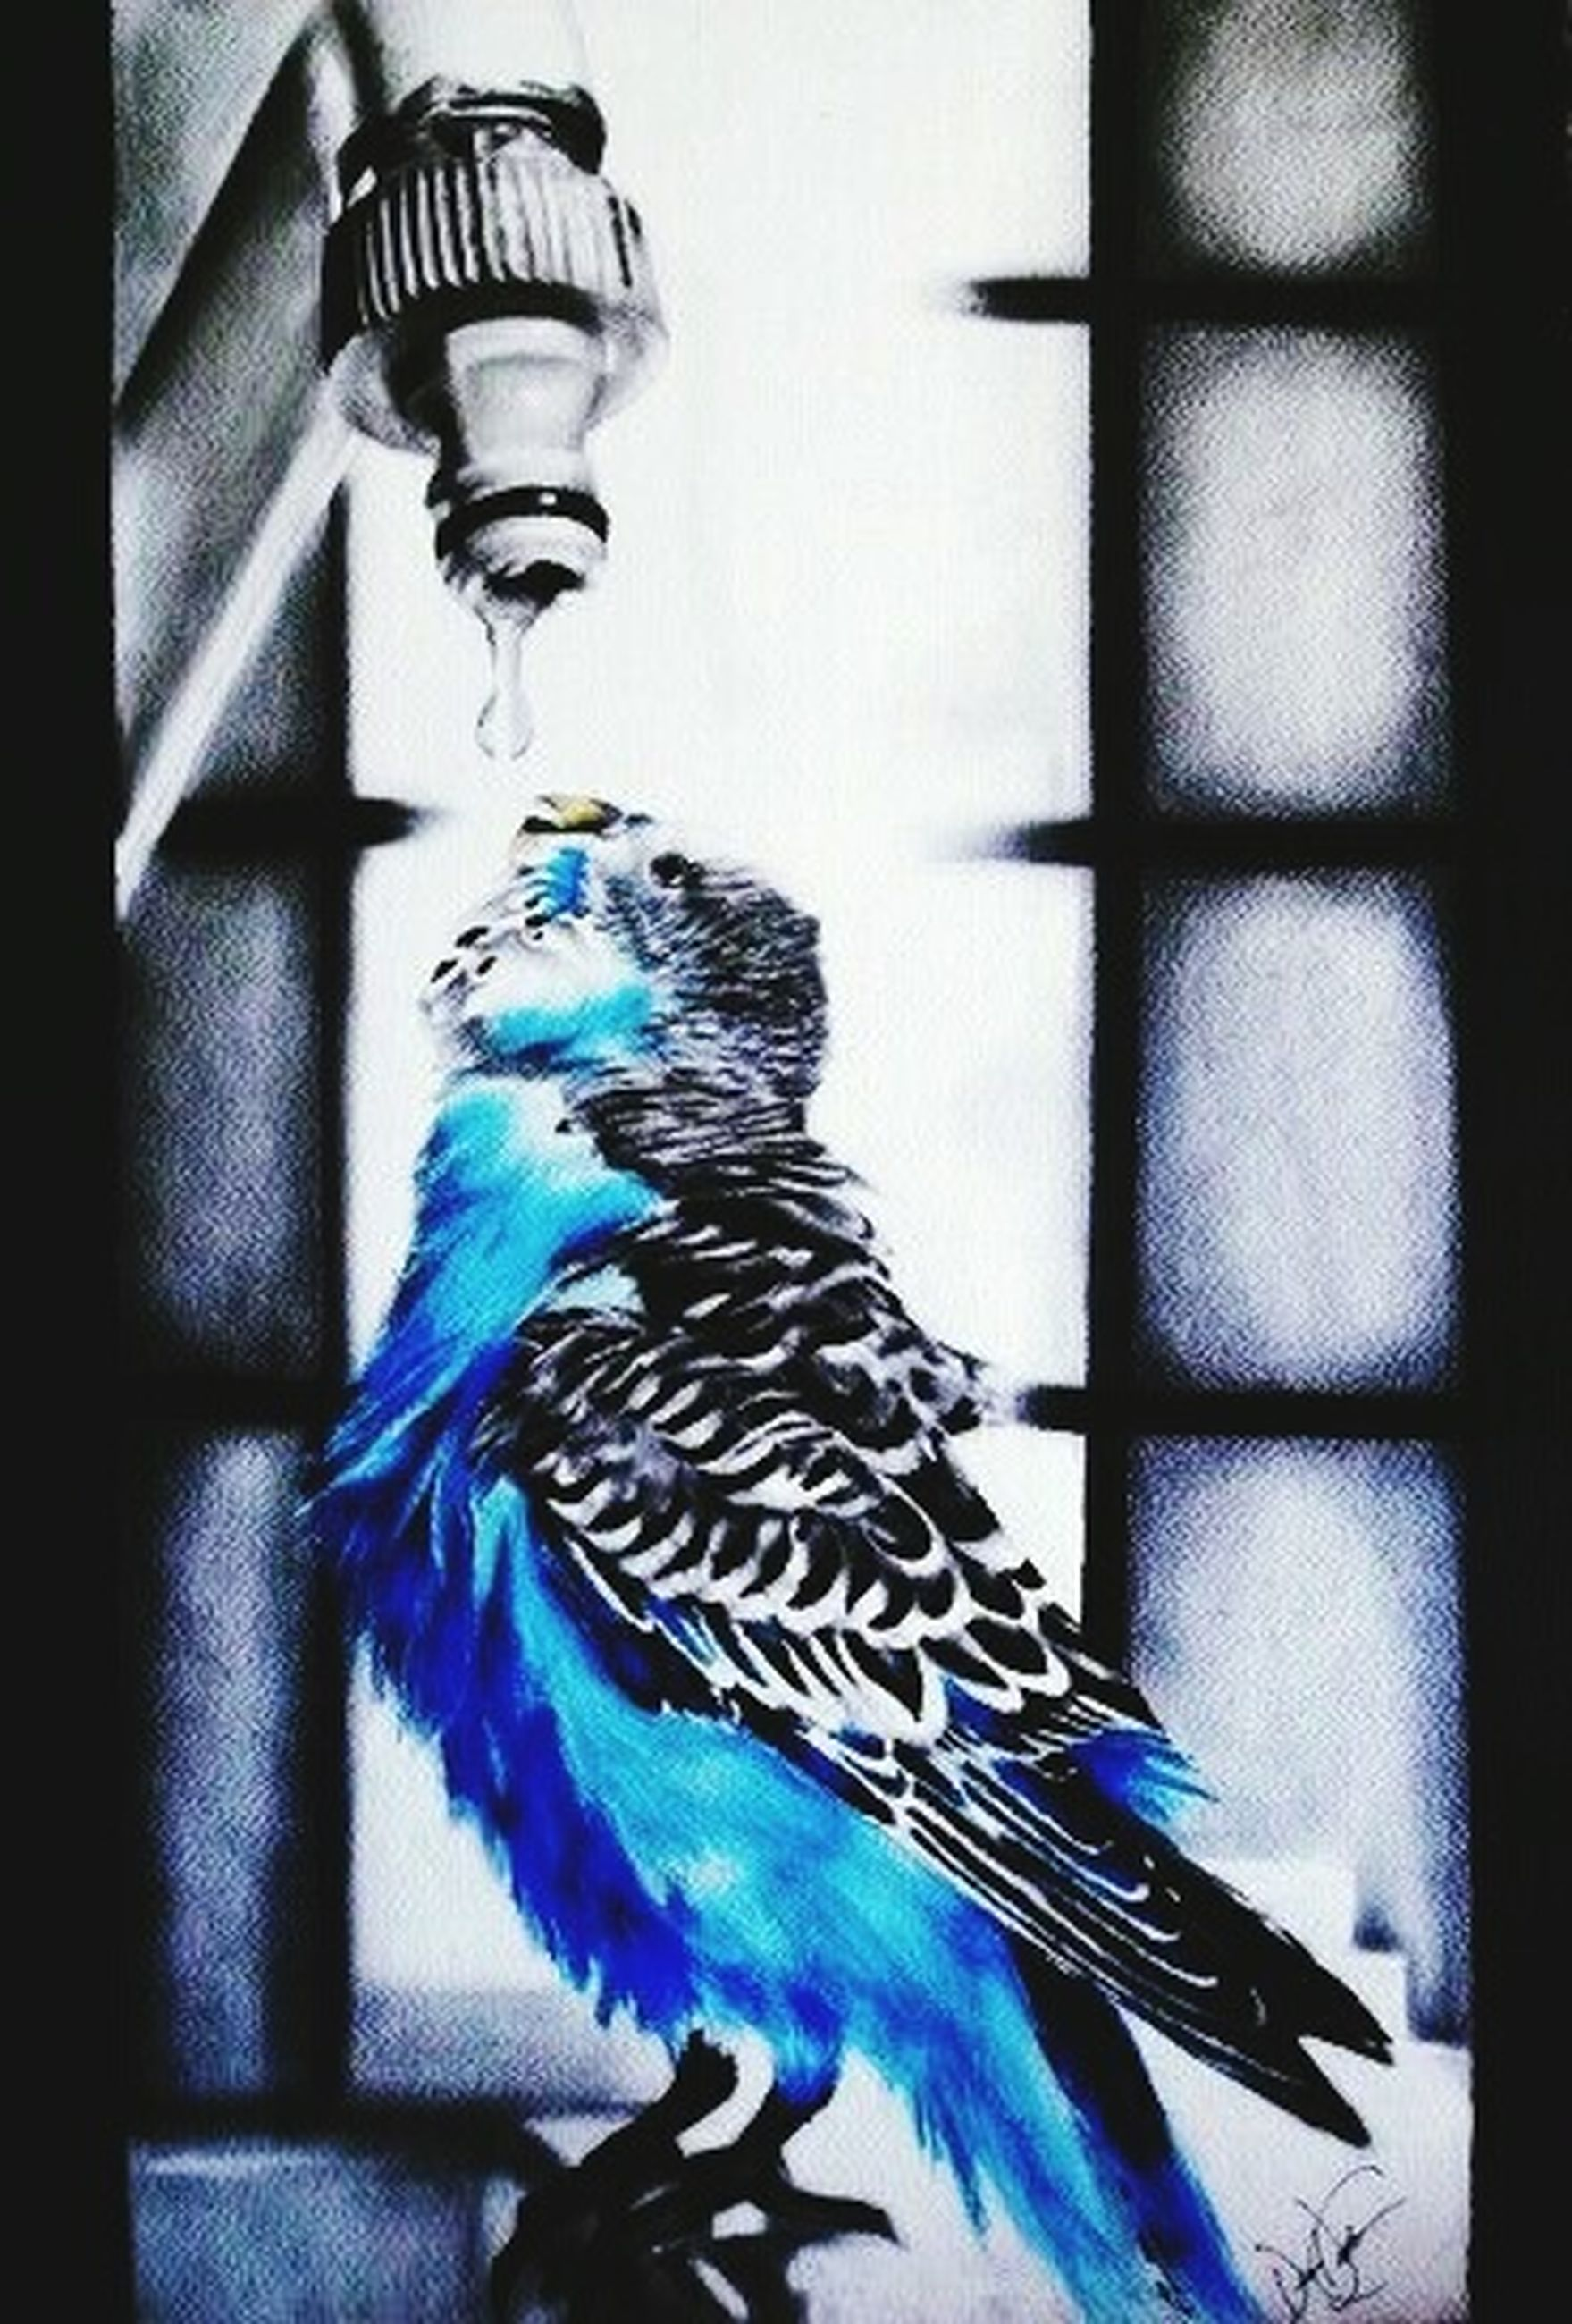 indoors, blue, art and craft, animal themes, one animal, no people, built structure, lighting equipment, architecture, close-up, illuminated, decoration, bird, low angle view, art, focus on foreground, pattern, glass - material, creativity, wall - building feature